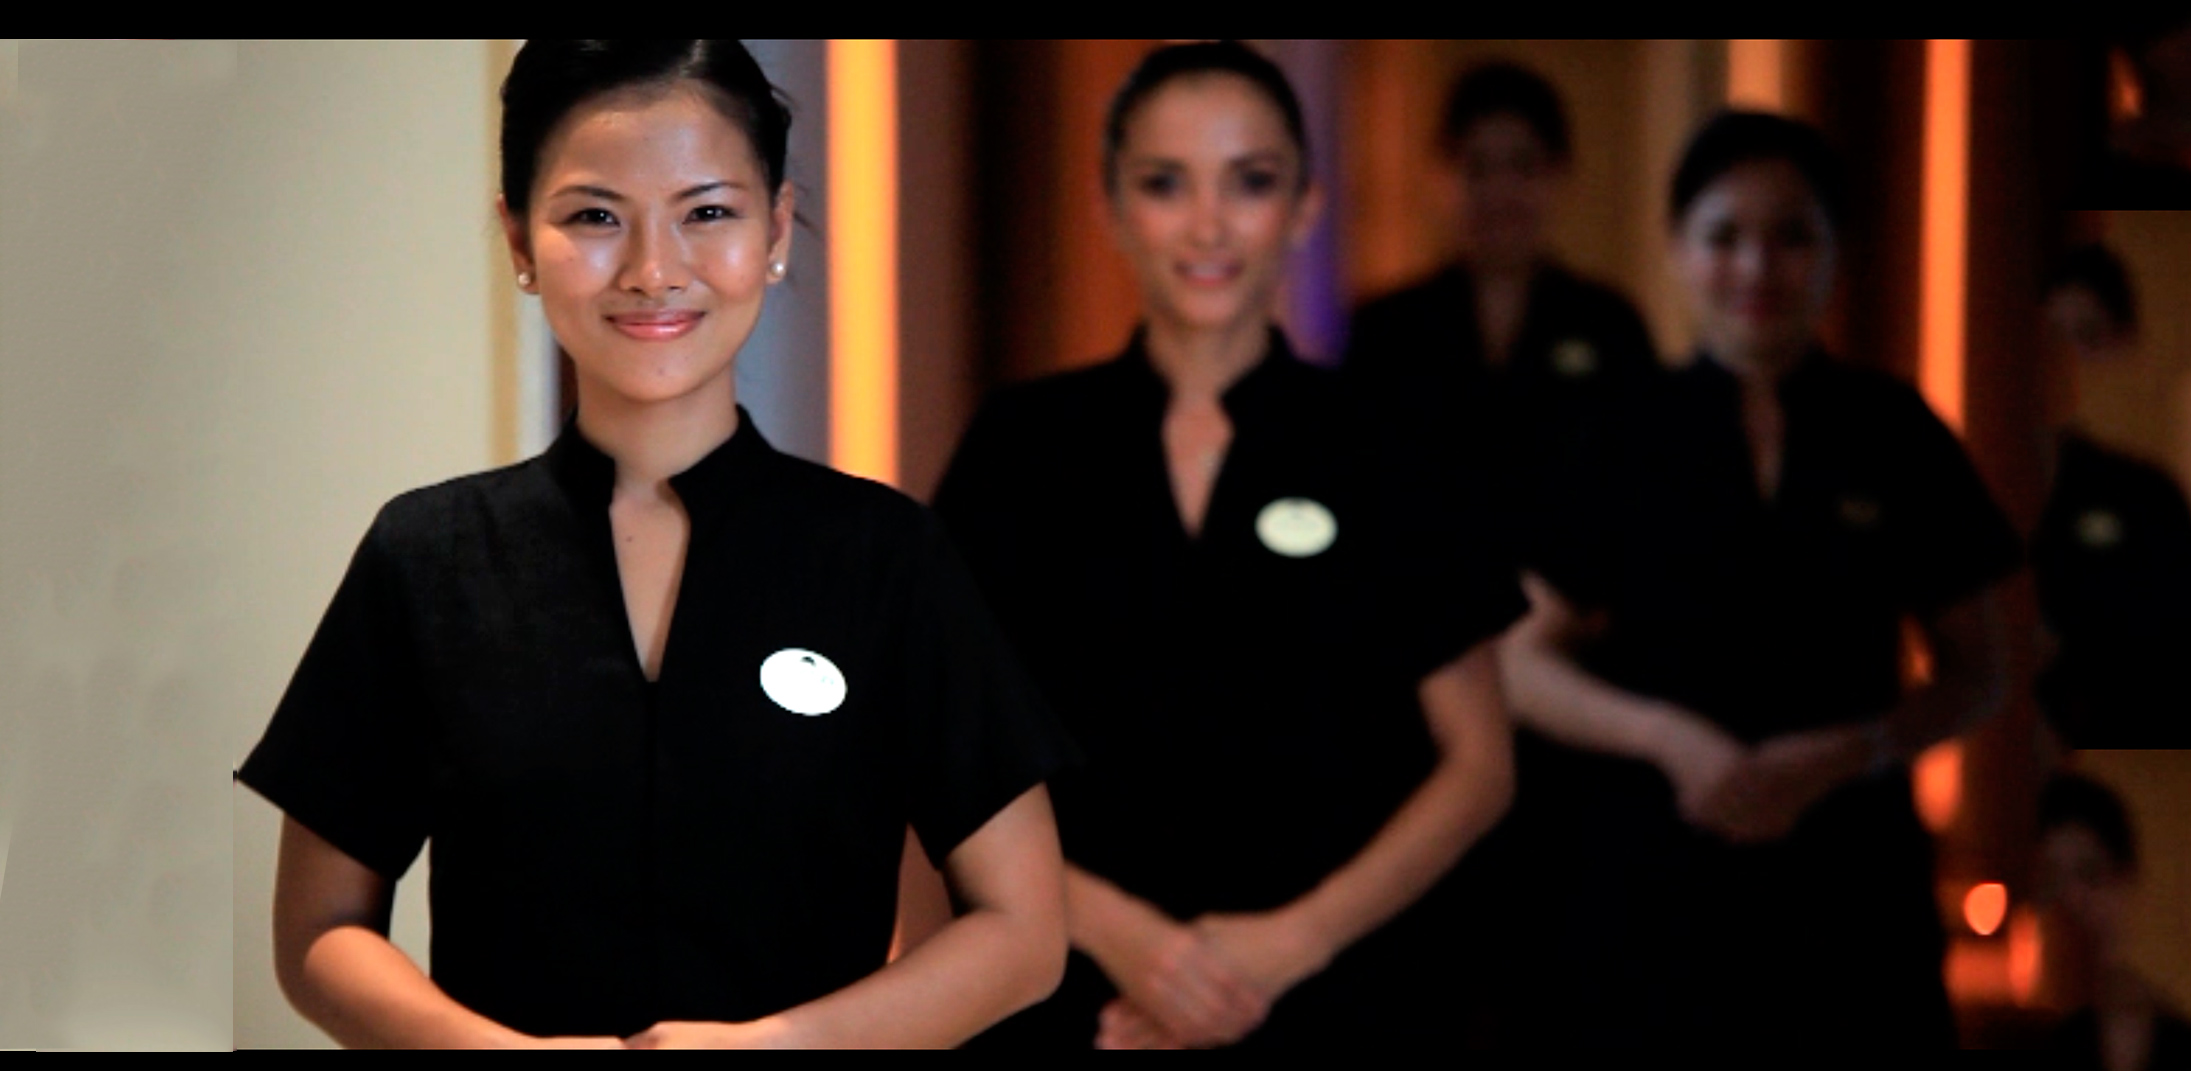 gem spa staff